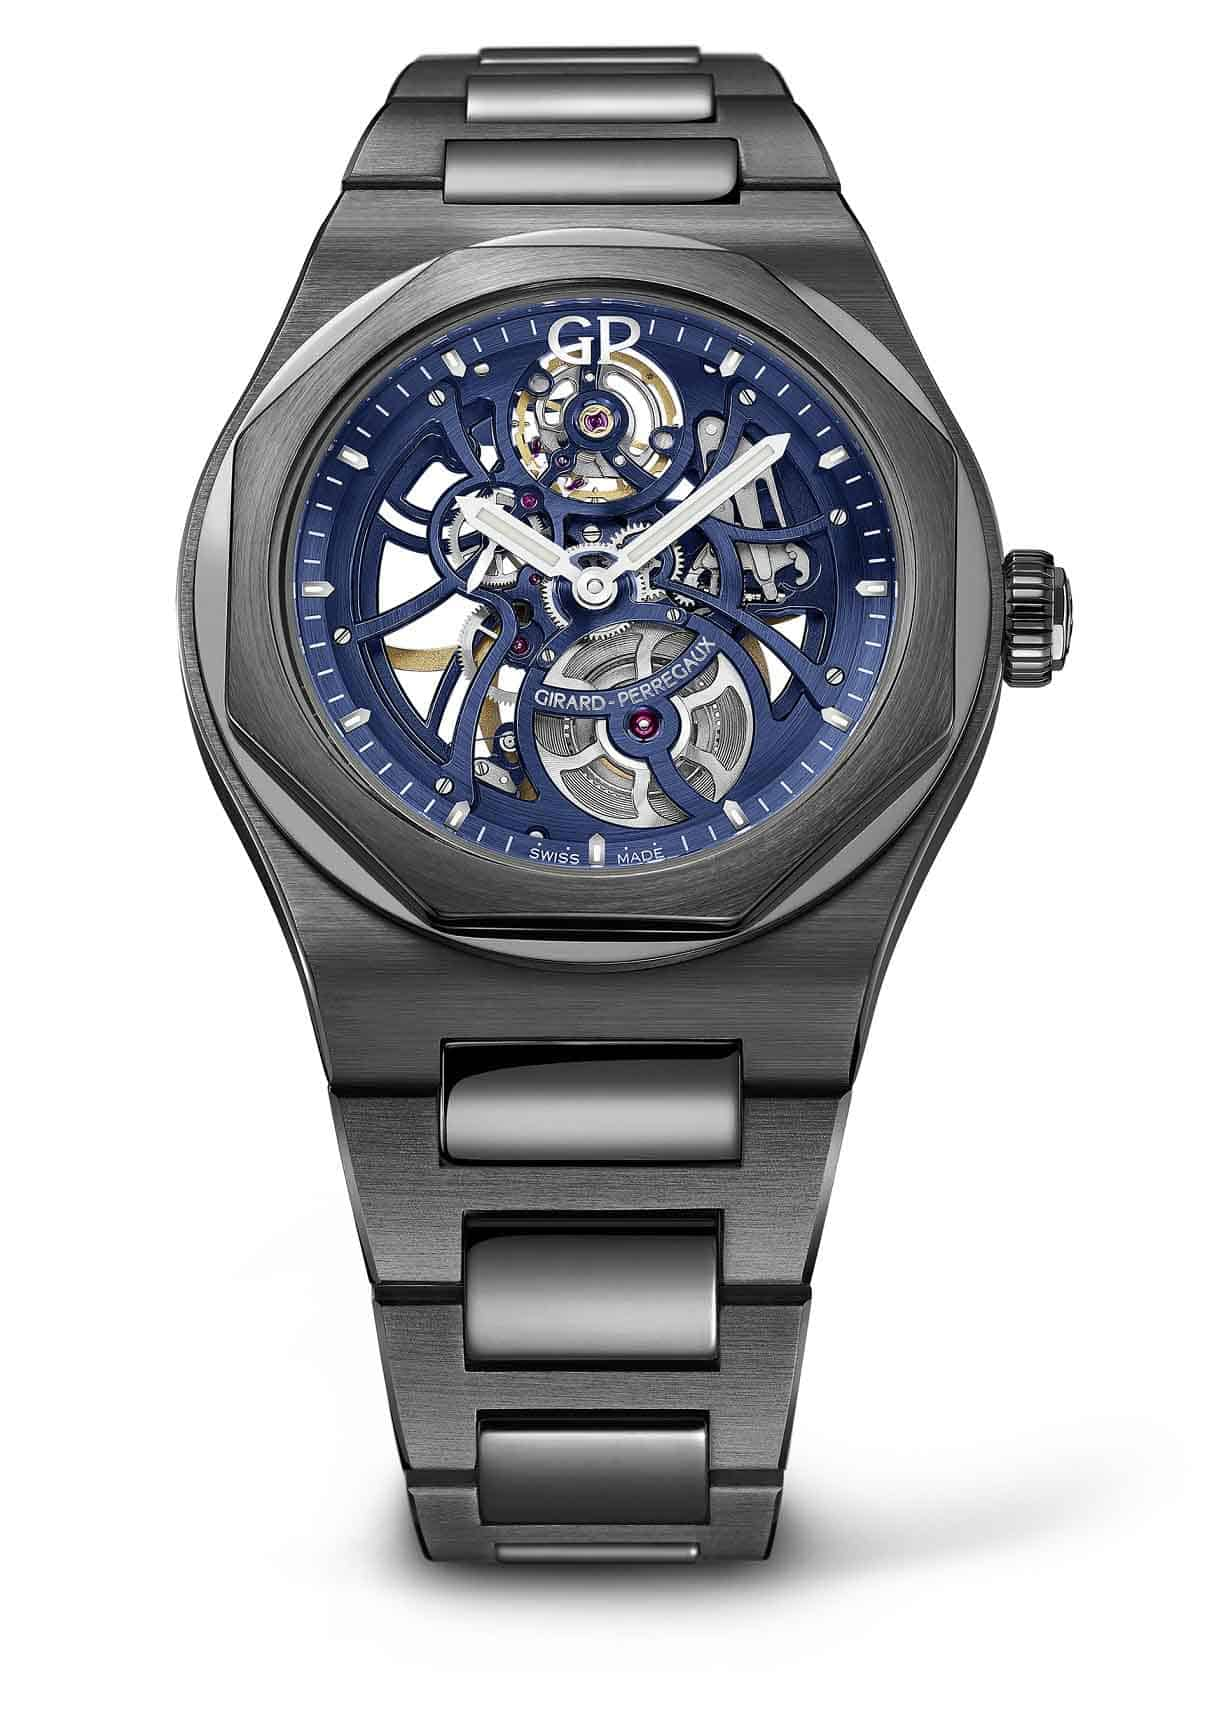 GP_Laureato Skeleton_Earth to Sky Edition_Soldier_81015-32-432-32A_38.400EUR_lowres